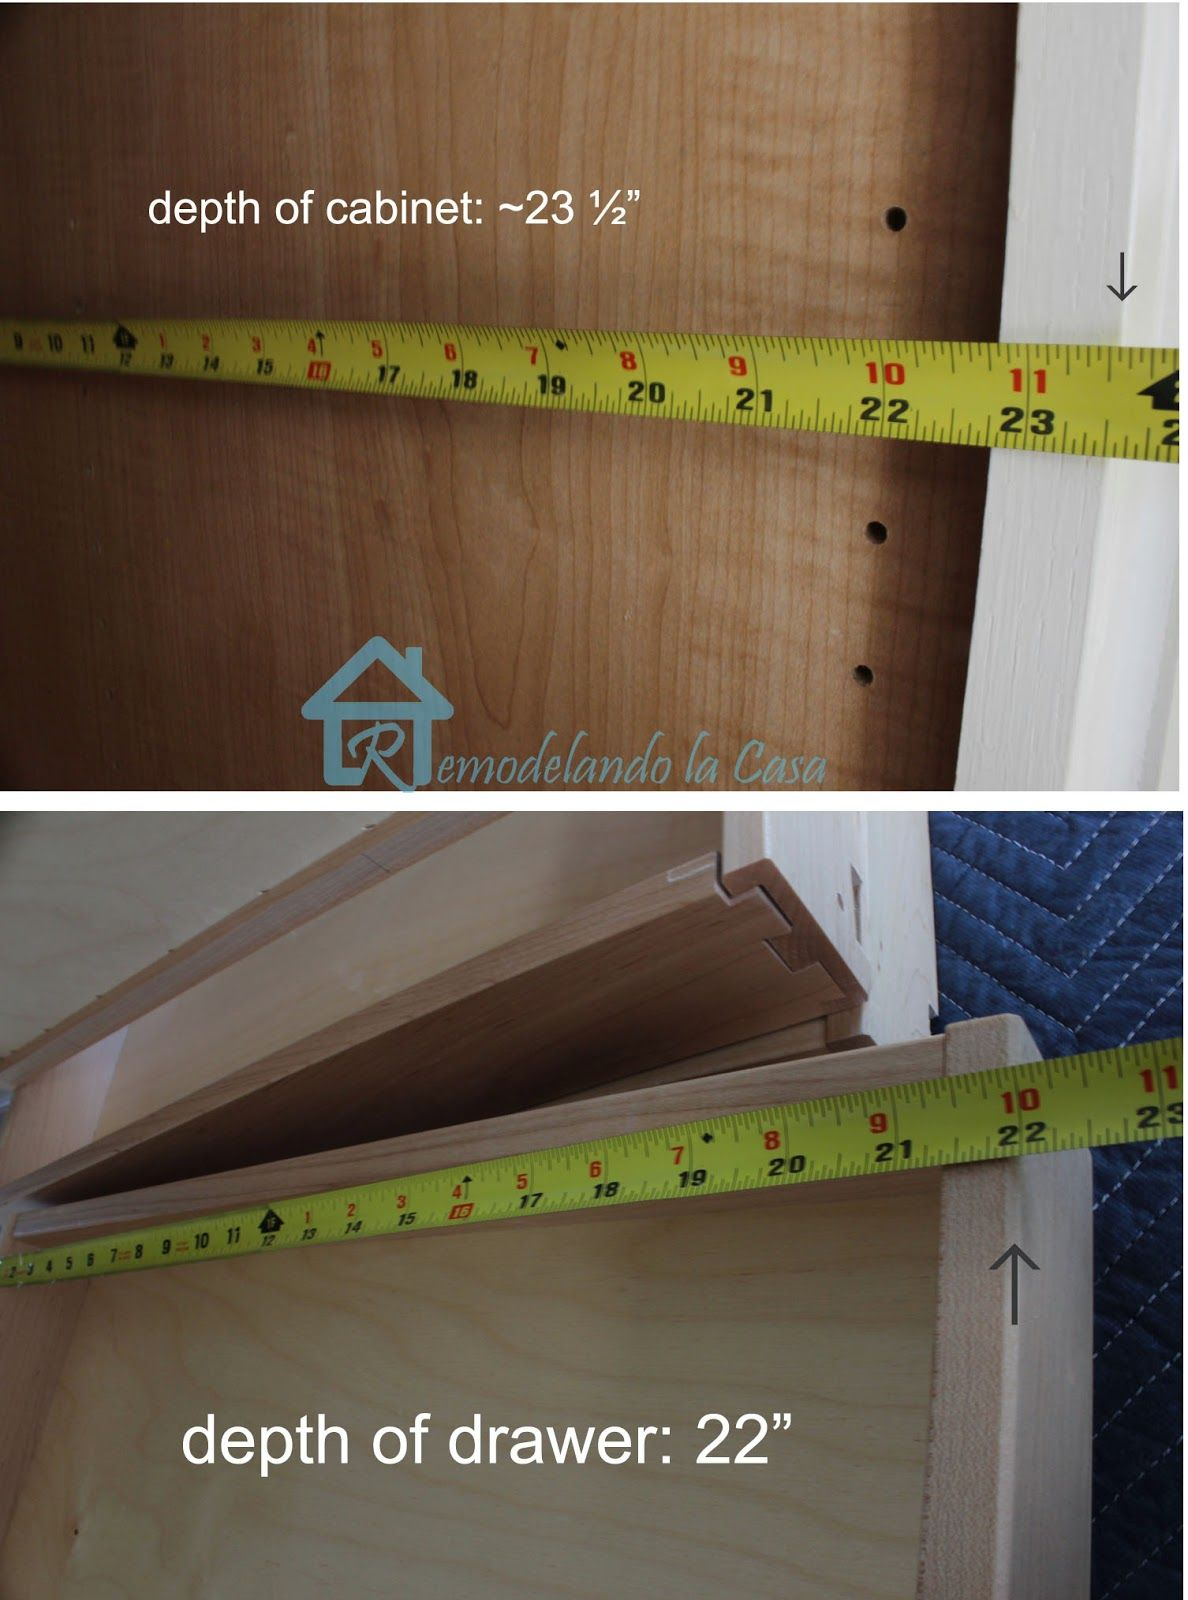 Kitchen Organization  Pull Out Shelves in Pantry - Kitchen organization, Pull out shelves, Kitchen organization diy, Woodworking desk plans, Chest woodworking plans, Woodworking projects that sell - How to install pull out shelves in skinny tall pantry